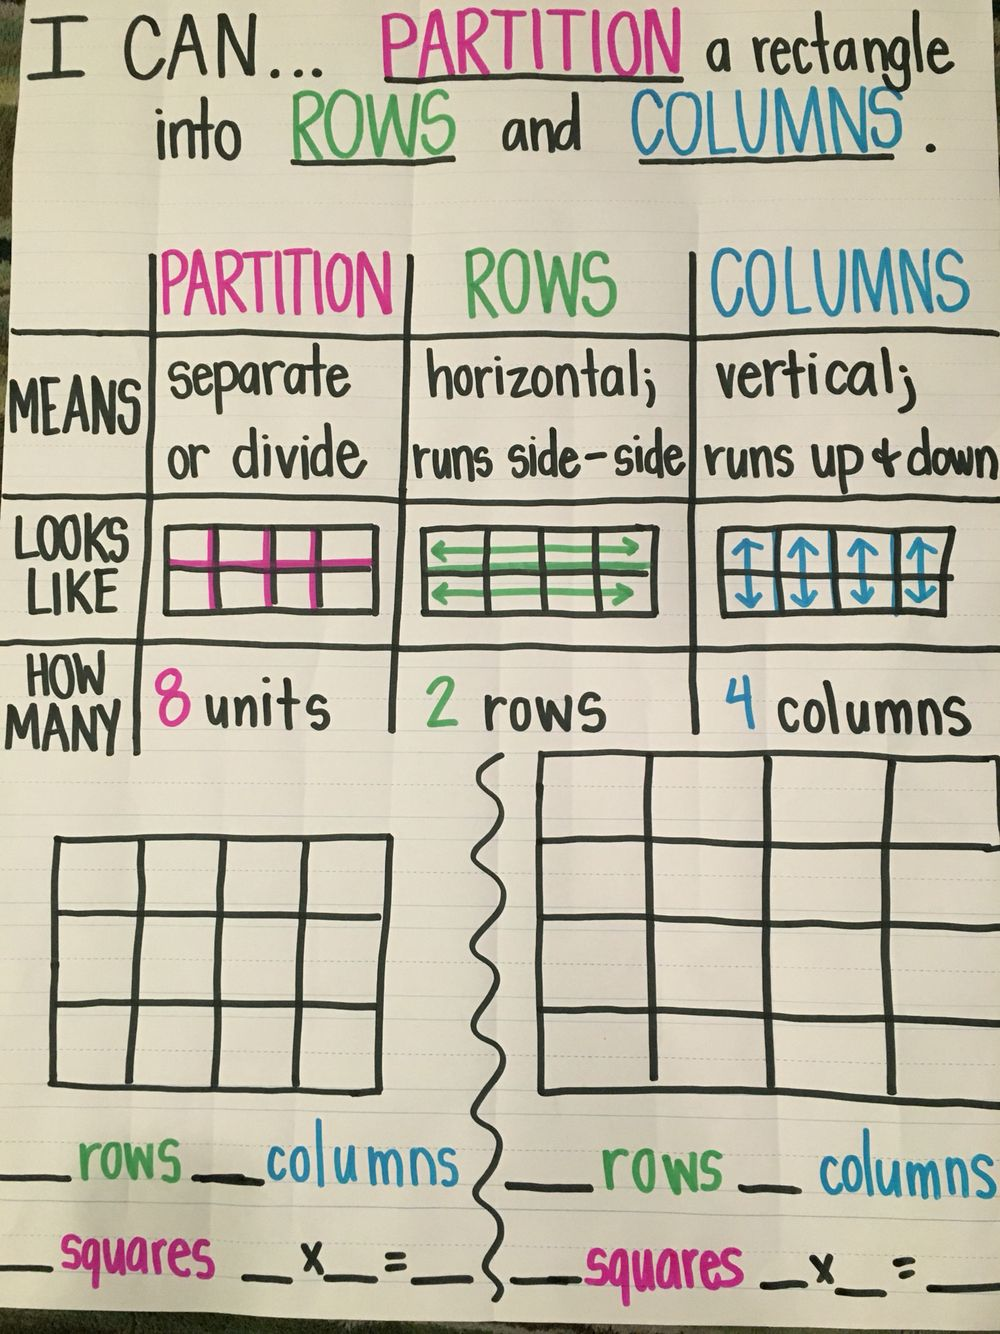 hight resolution of Partition rectangle into Rows and Columns   Math fractions